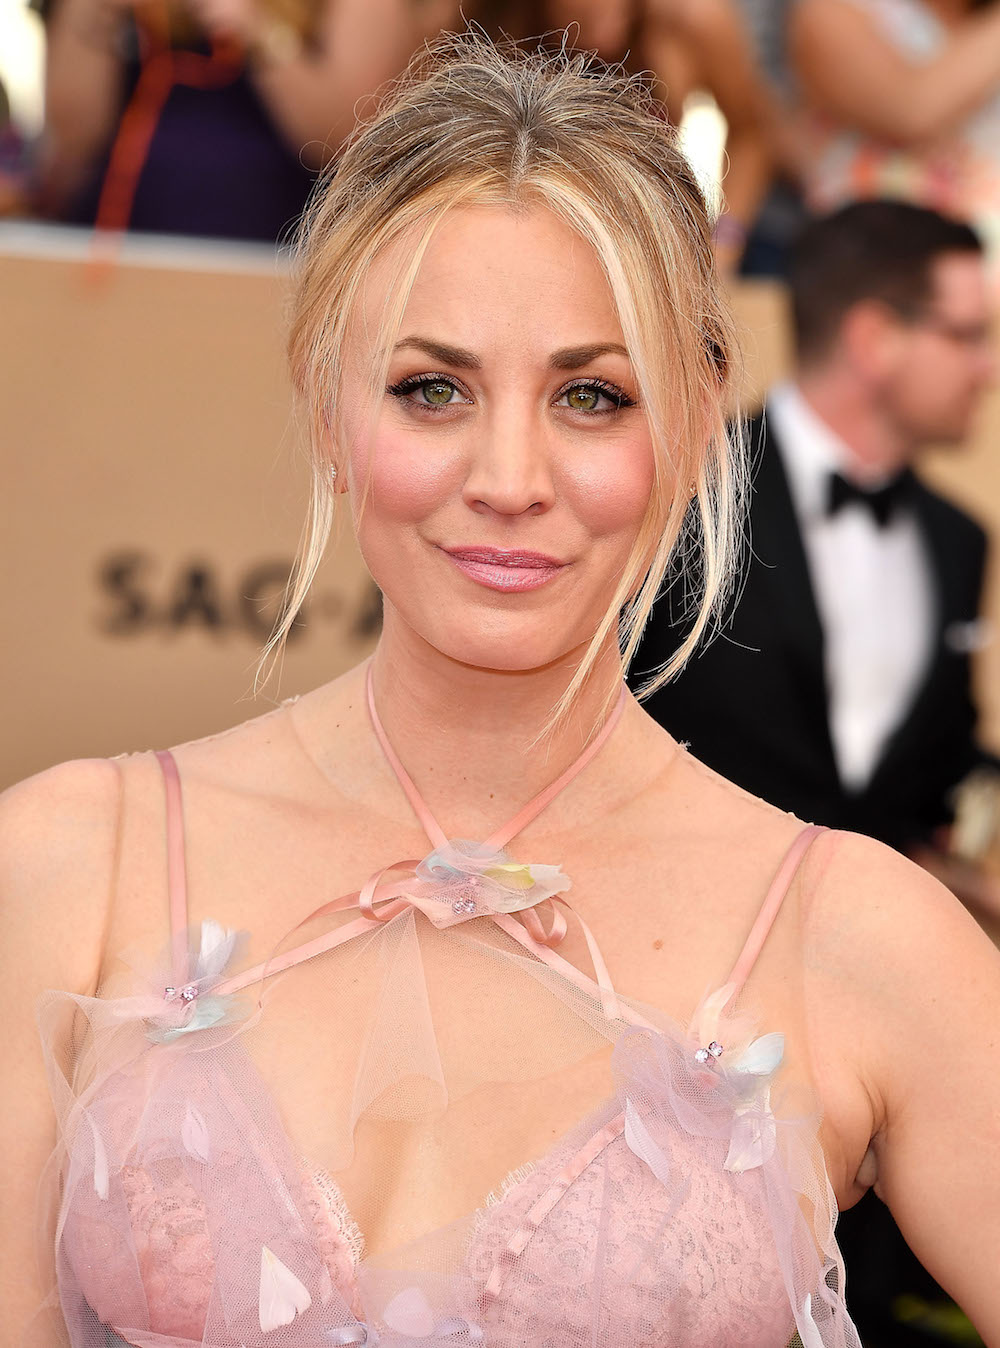 Kaley Cuoco arrives at the 23rd Annual Screen Actors Guild Awards